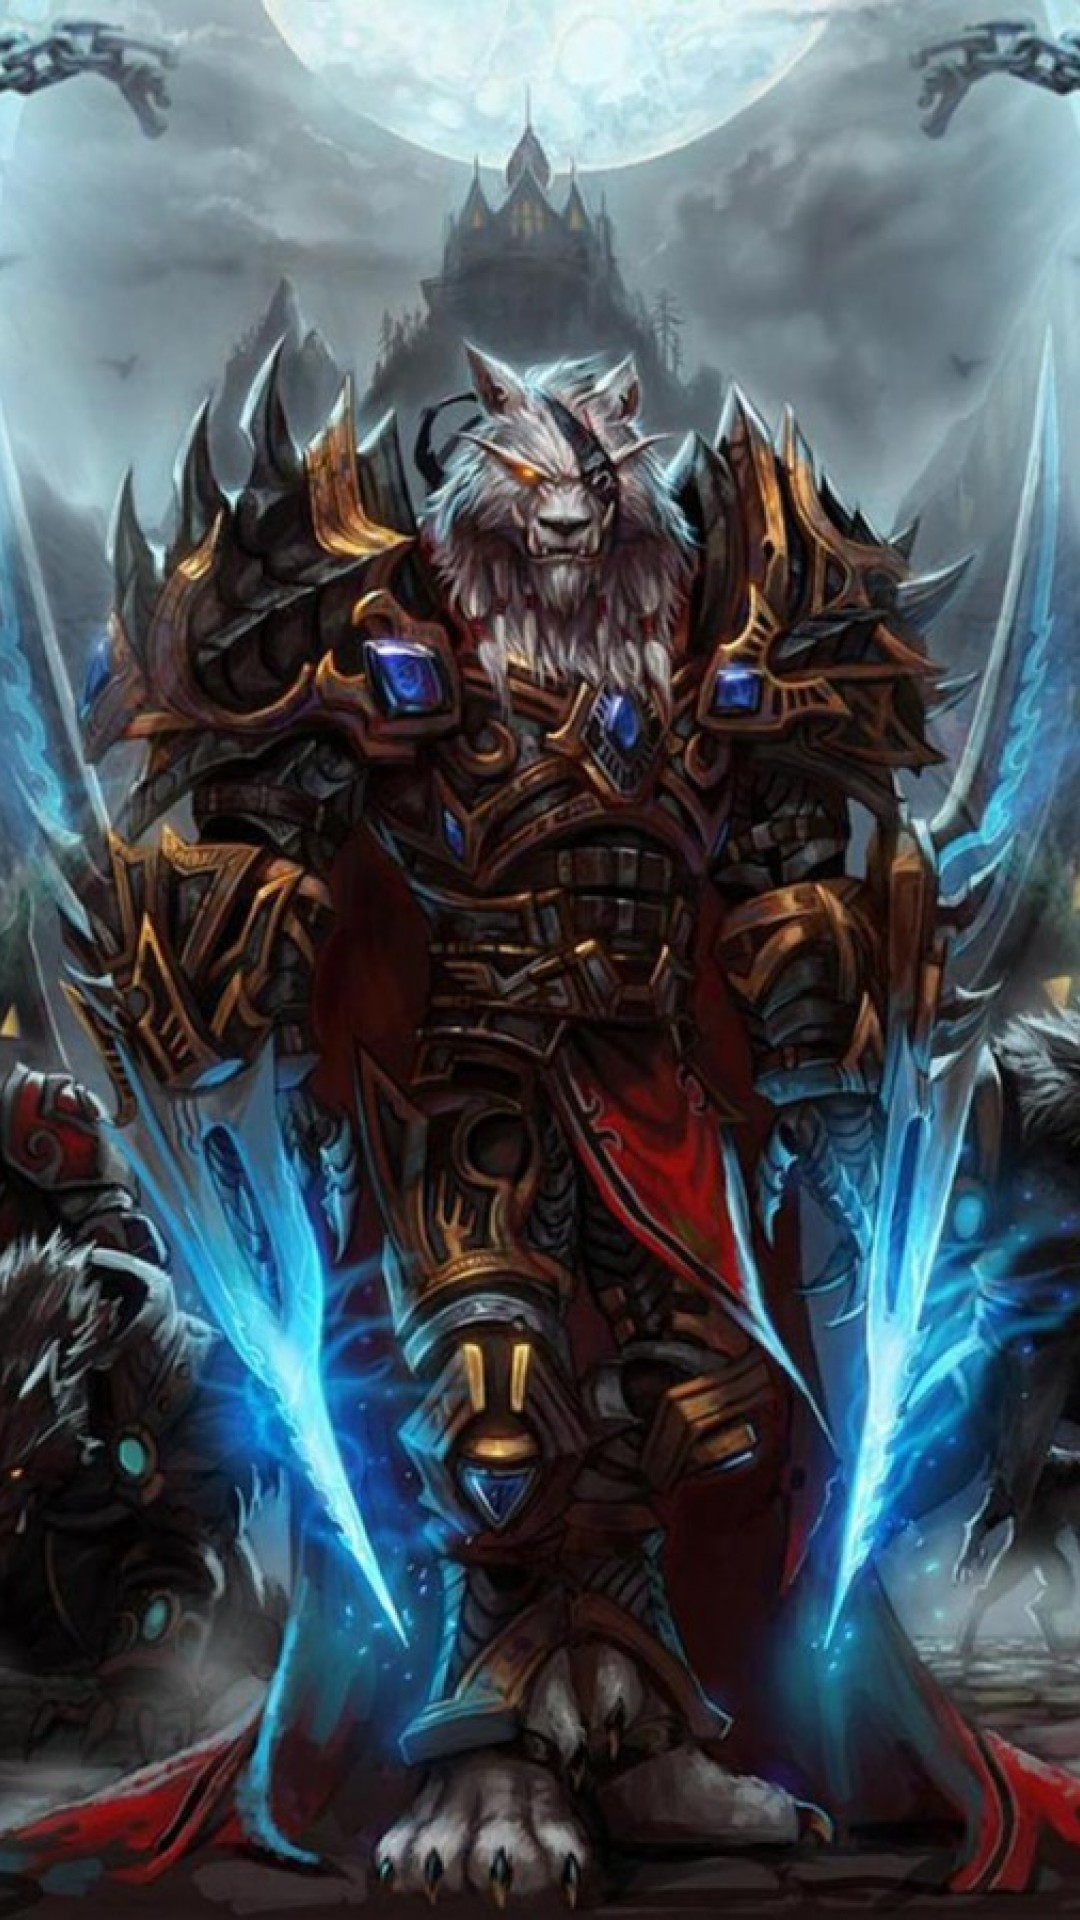 Cool Wallpapers For Iphone For Girls Download World Of Warcraft Iphone Wallpaper Gallery